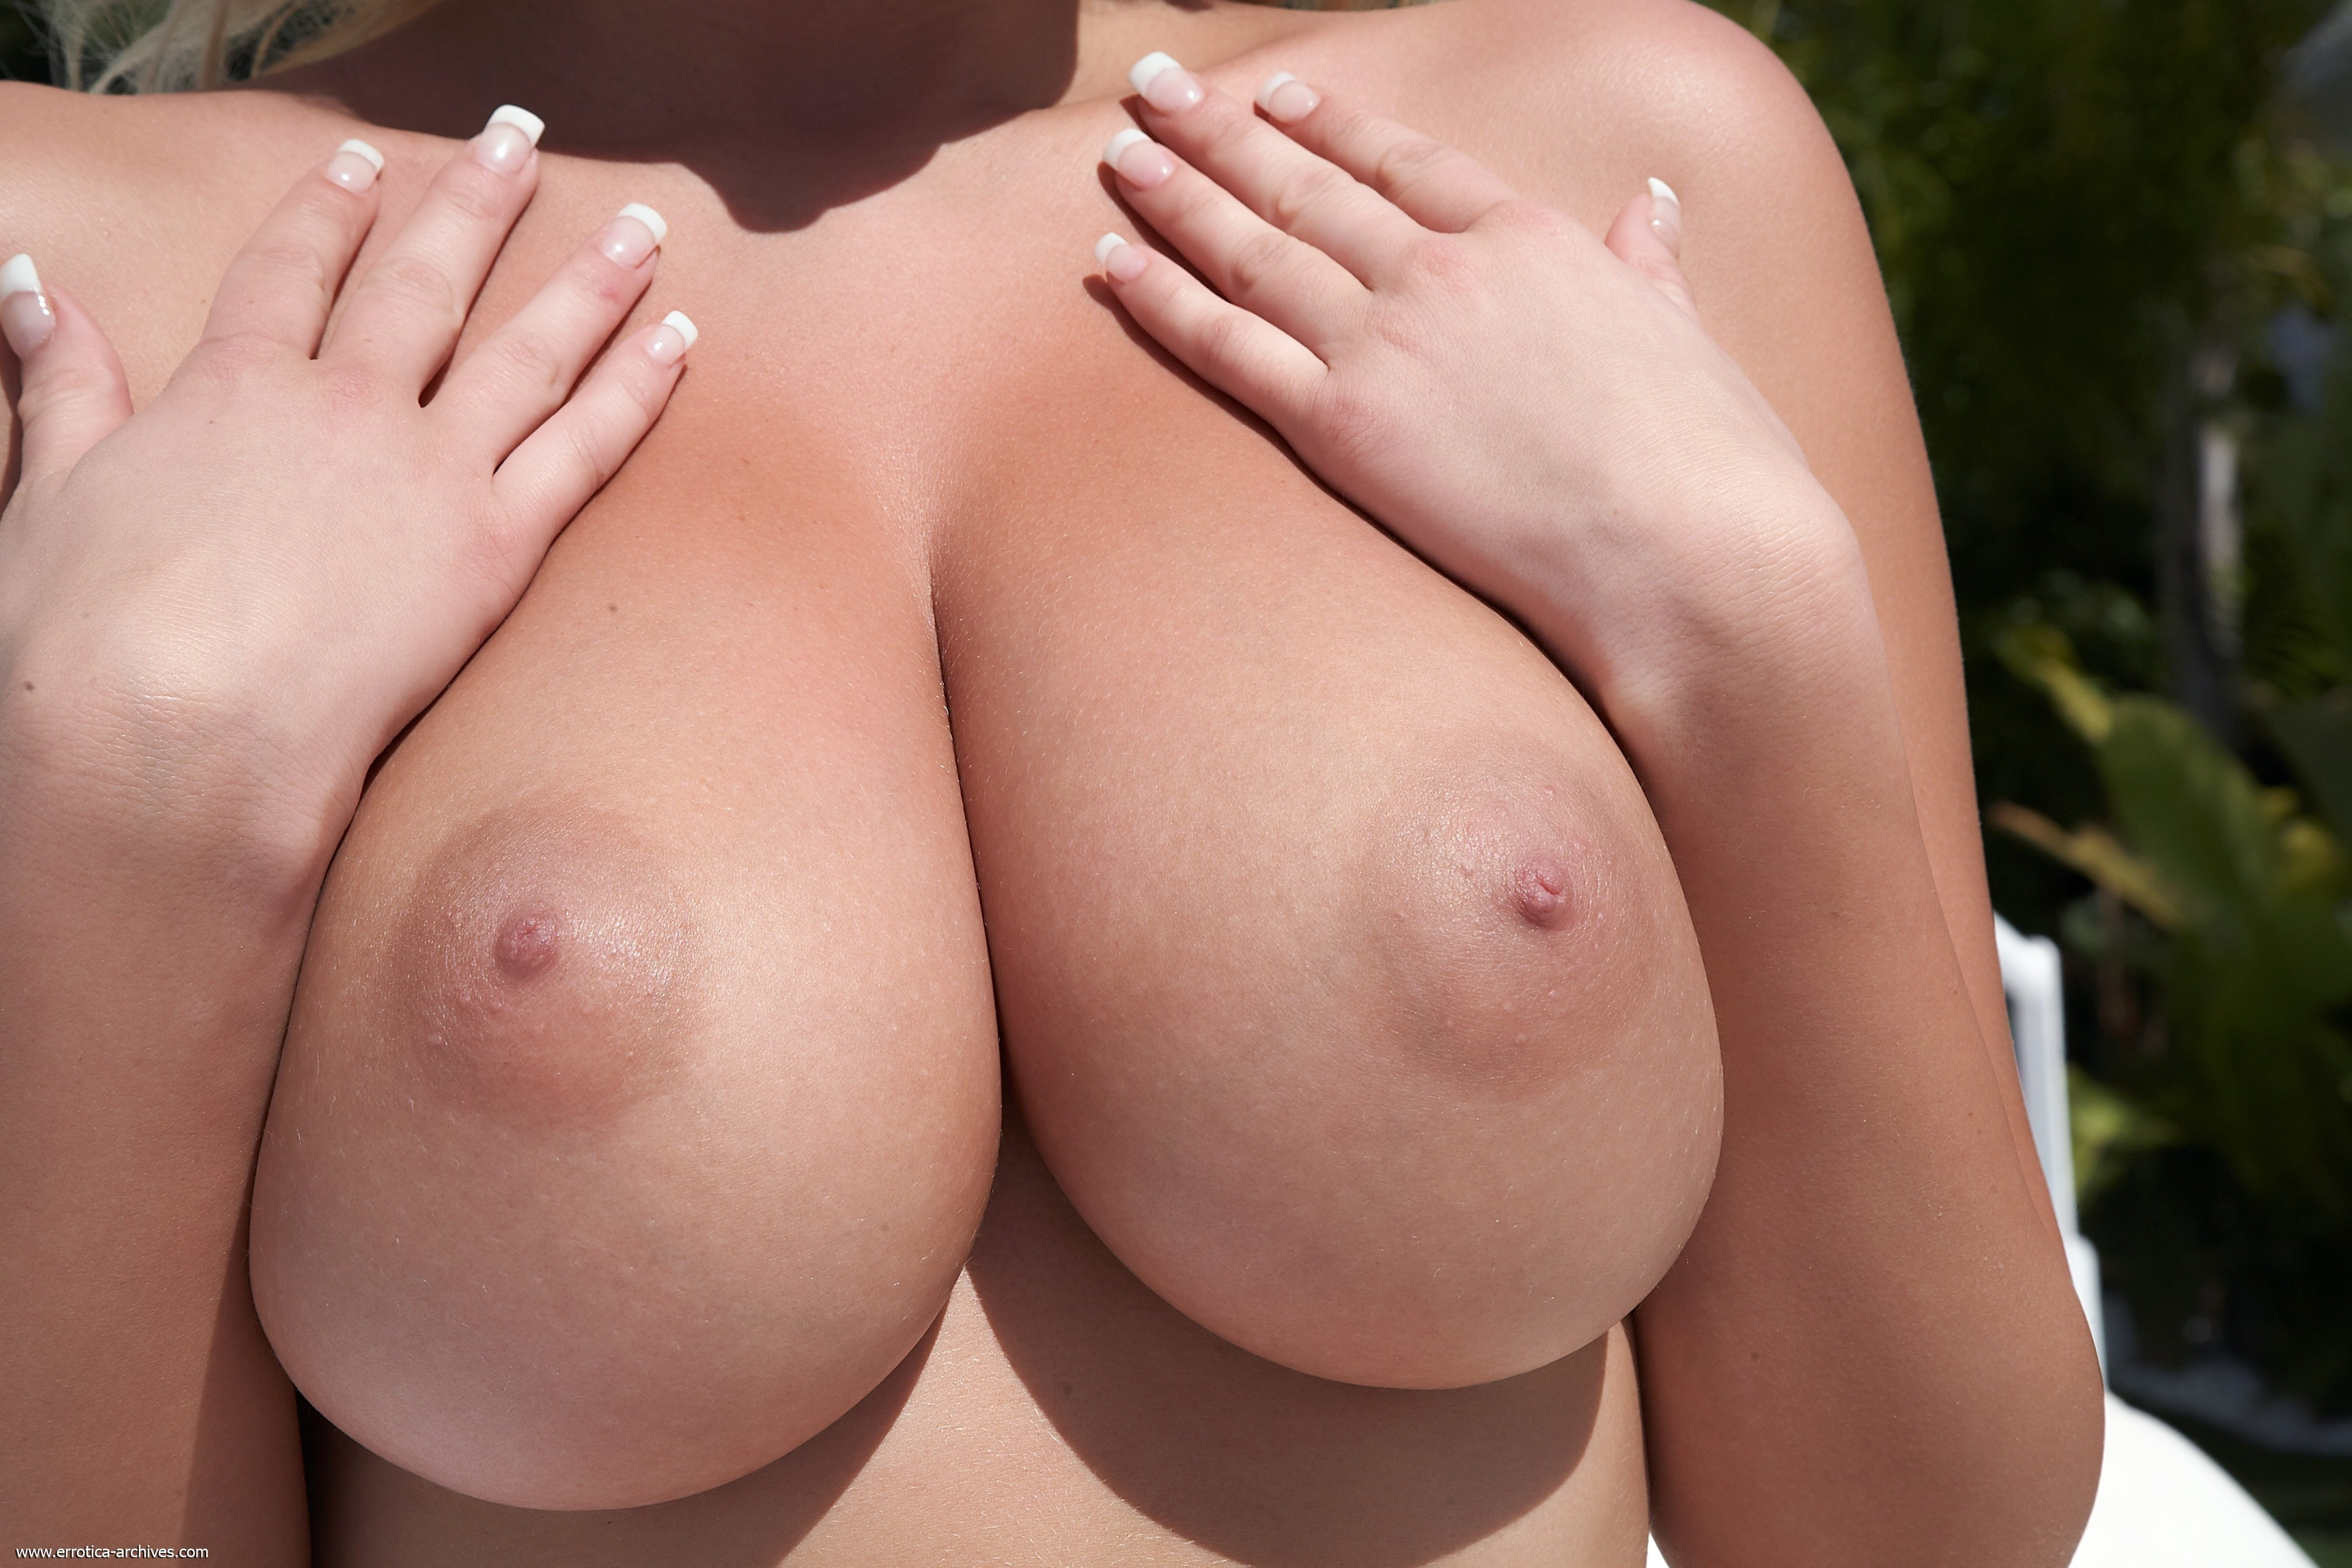 Hd perfect tits galery perfect tits blonde rides perfectly in reverse cowgirl